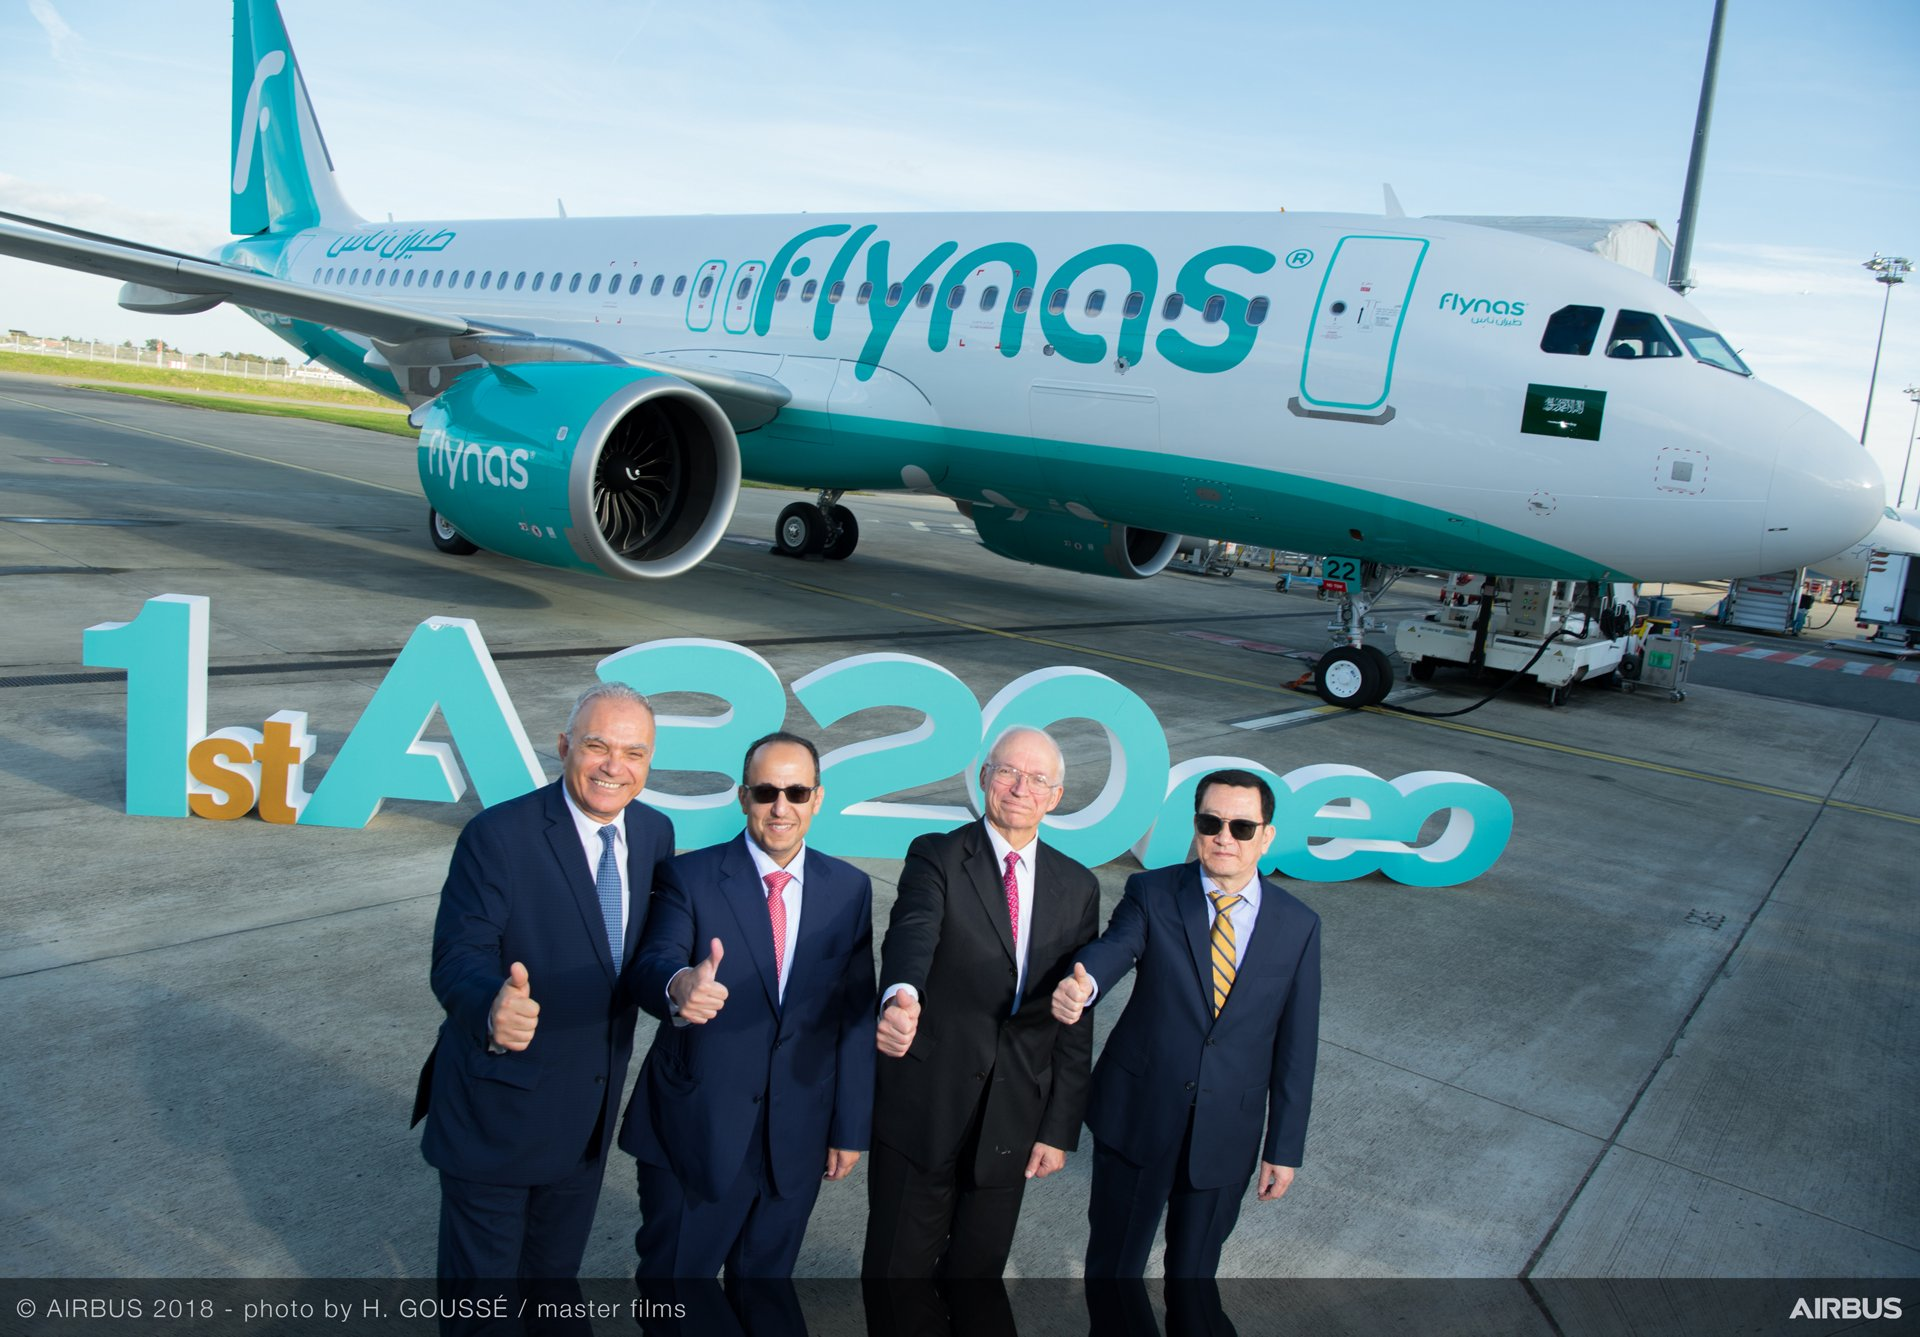 First A320neo delivery to Flynas; from left to right:  Fouad Attar, Head of Commercial Aircraft, Airbus Africa & Middle East; Bandar Al Mohanna, CEO of Flynas; Didier Evrard, Executive Vice President Programmes, Airbus Commercial; Huang Bo-Chief, Commercial Officer, CMB Leasing